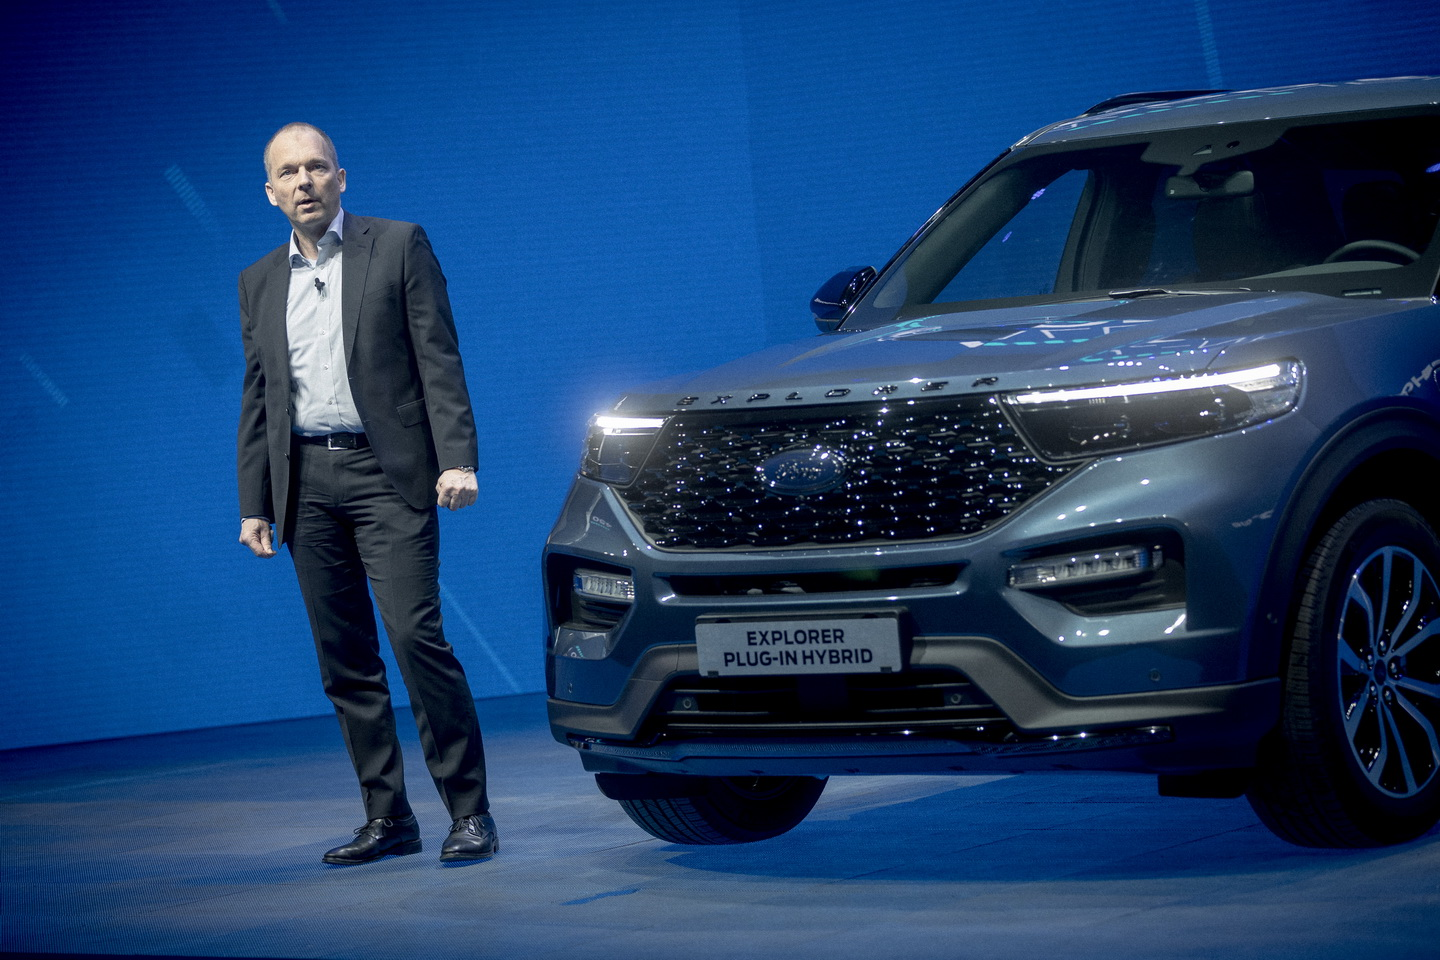 Ford Go Further 2019 event hybrid cars 52